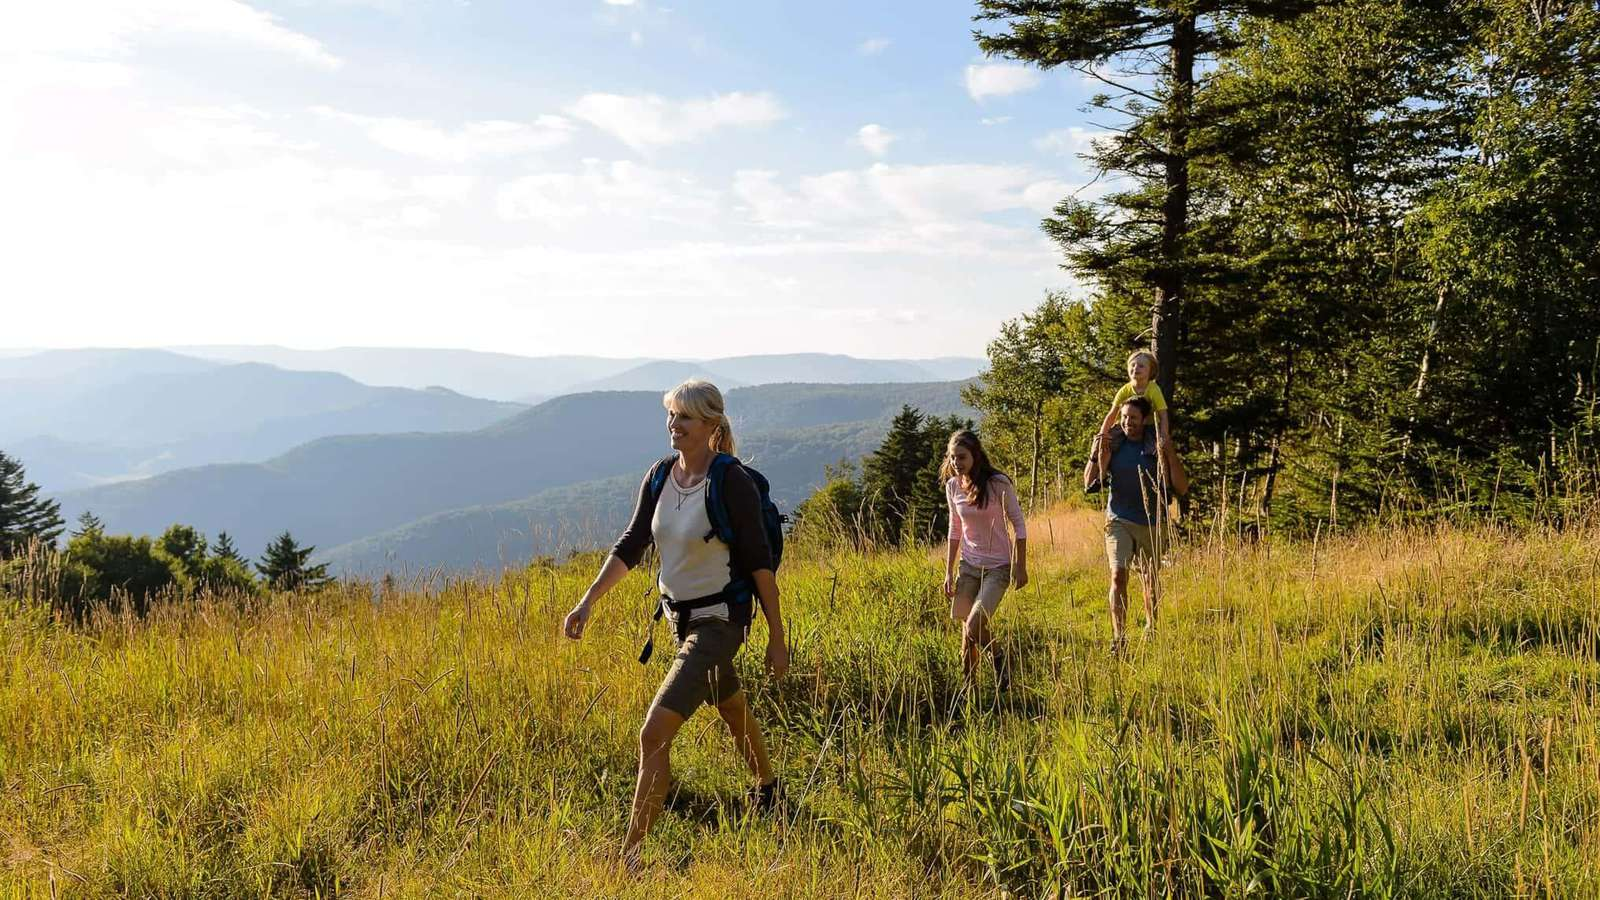 Enjoys miles of hiking with views of the beautiful WV mountains!